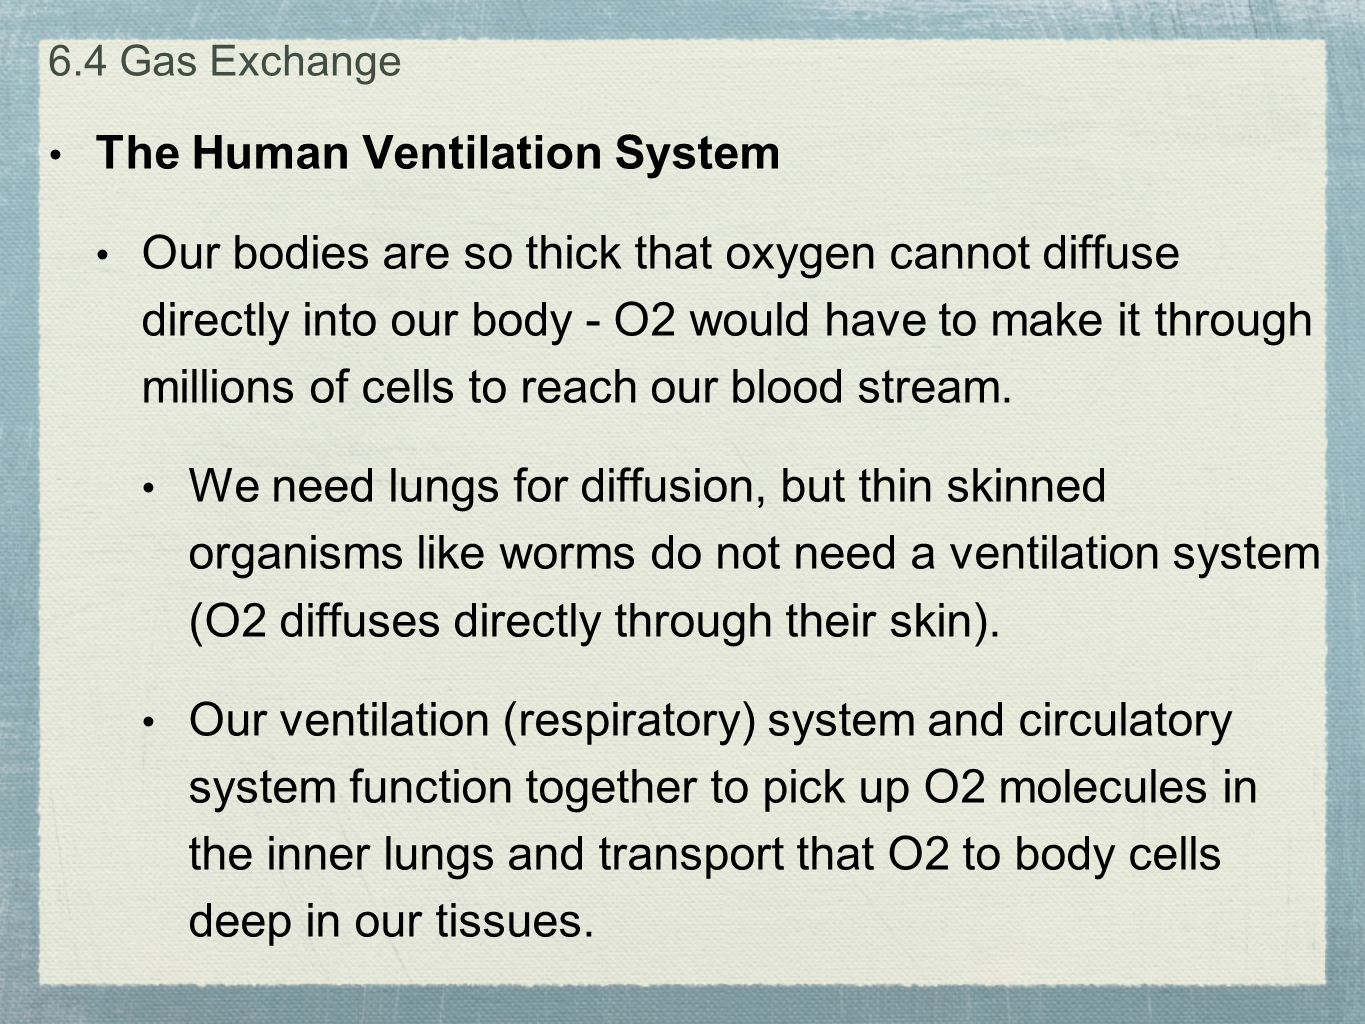 The Human Ventilation System Our bodies are so thick that oxygen cannot diffuse directly into our body - O2 would have to make it through millions of